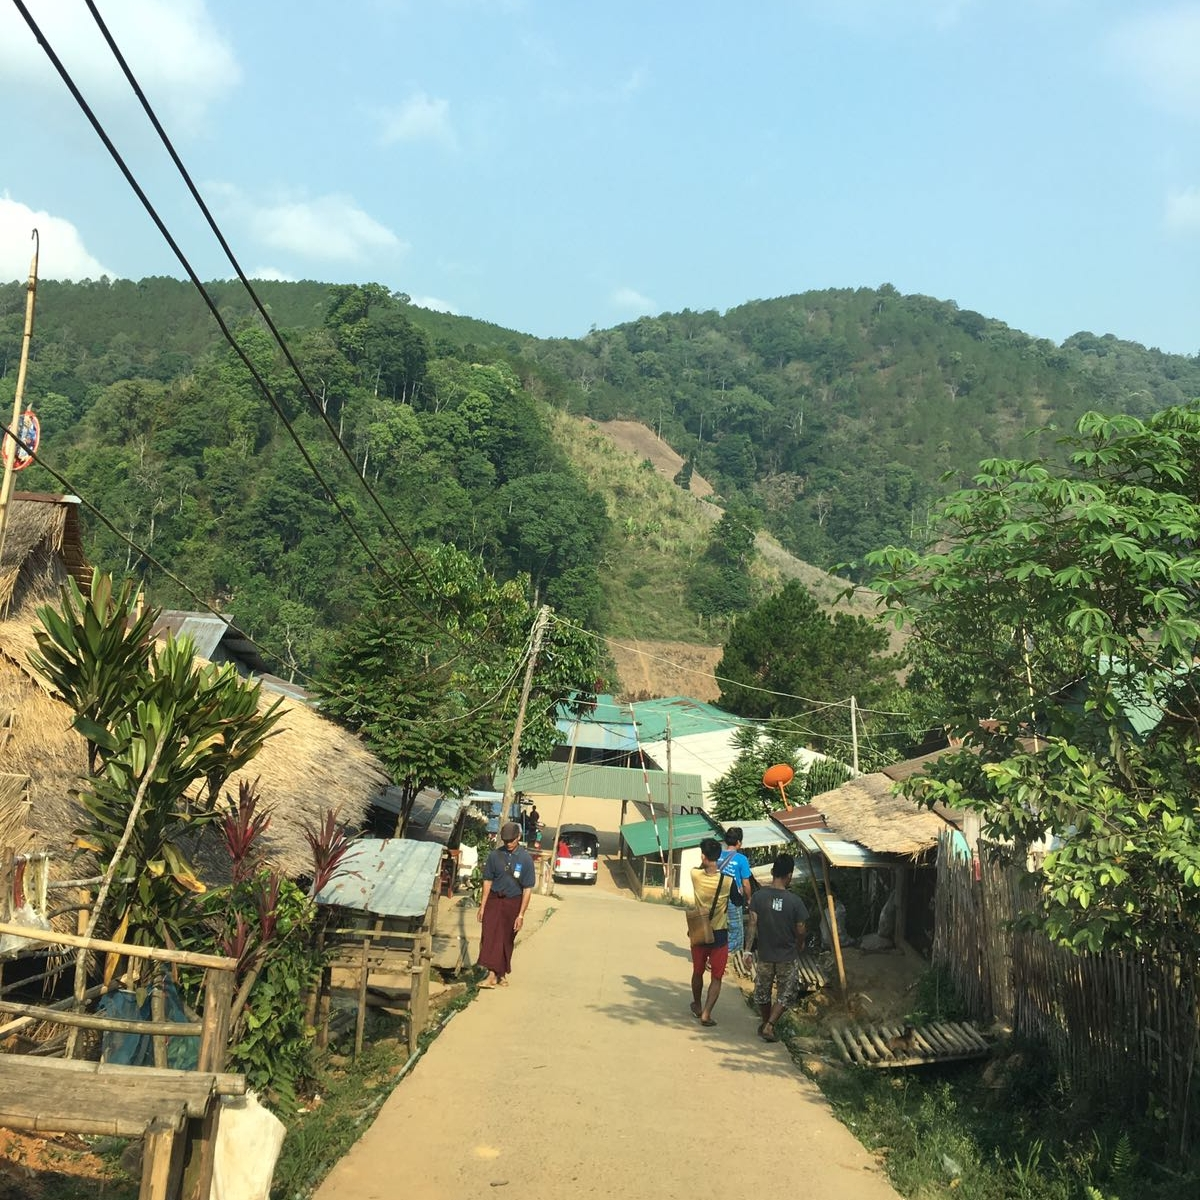 This is Umpiem Mai camp where the team will be teaching